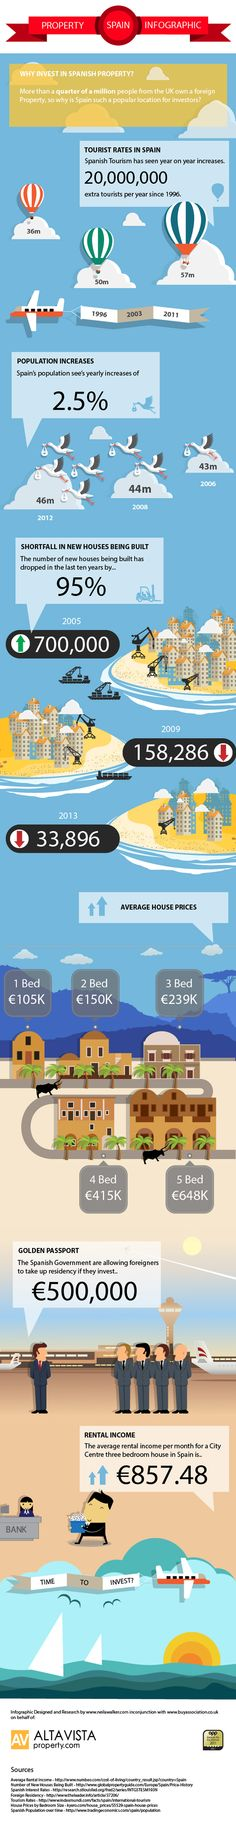 Spanish Property Infographic